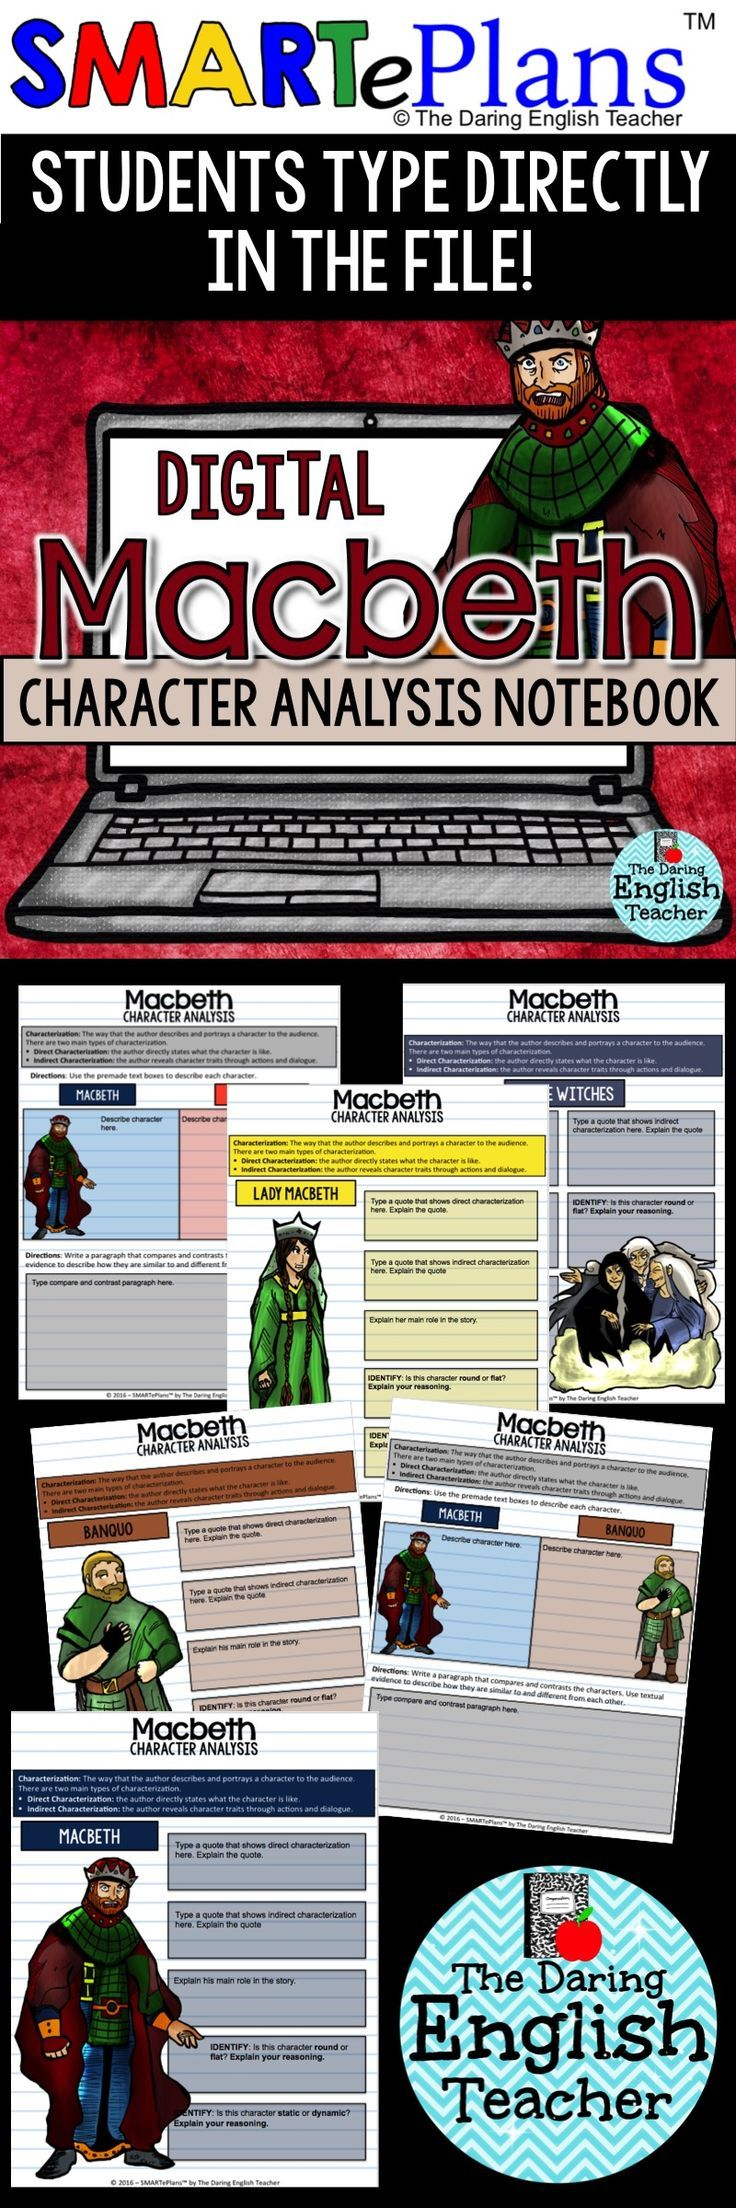 best macbeth analysis ideas the macbeth digital macbeth character analysis notebook for google drive analyze each main character in william shakepeare s